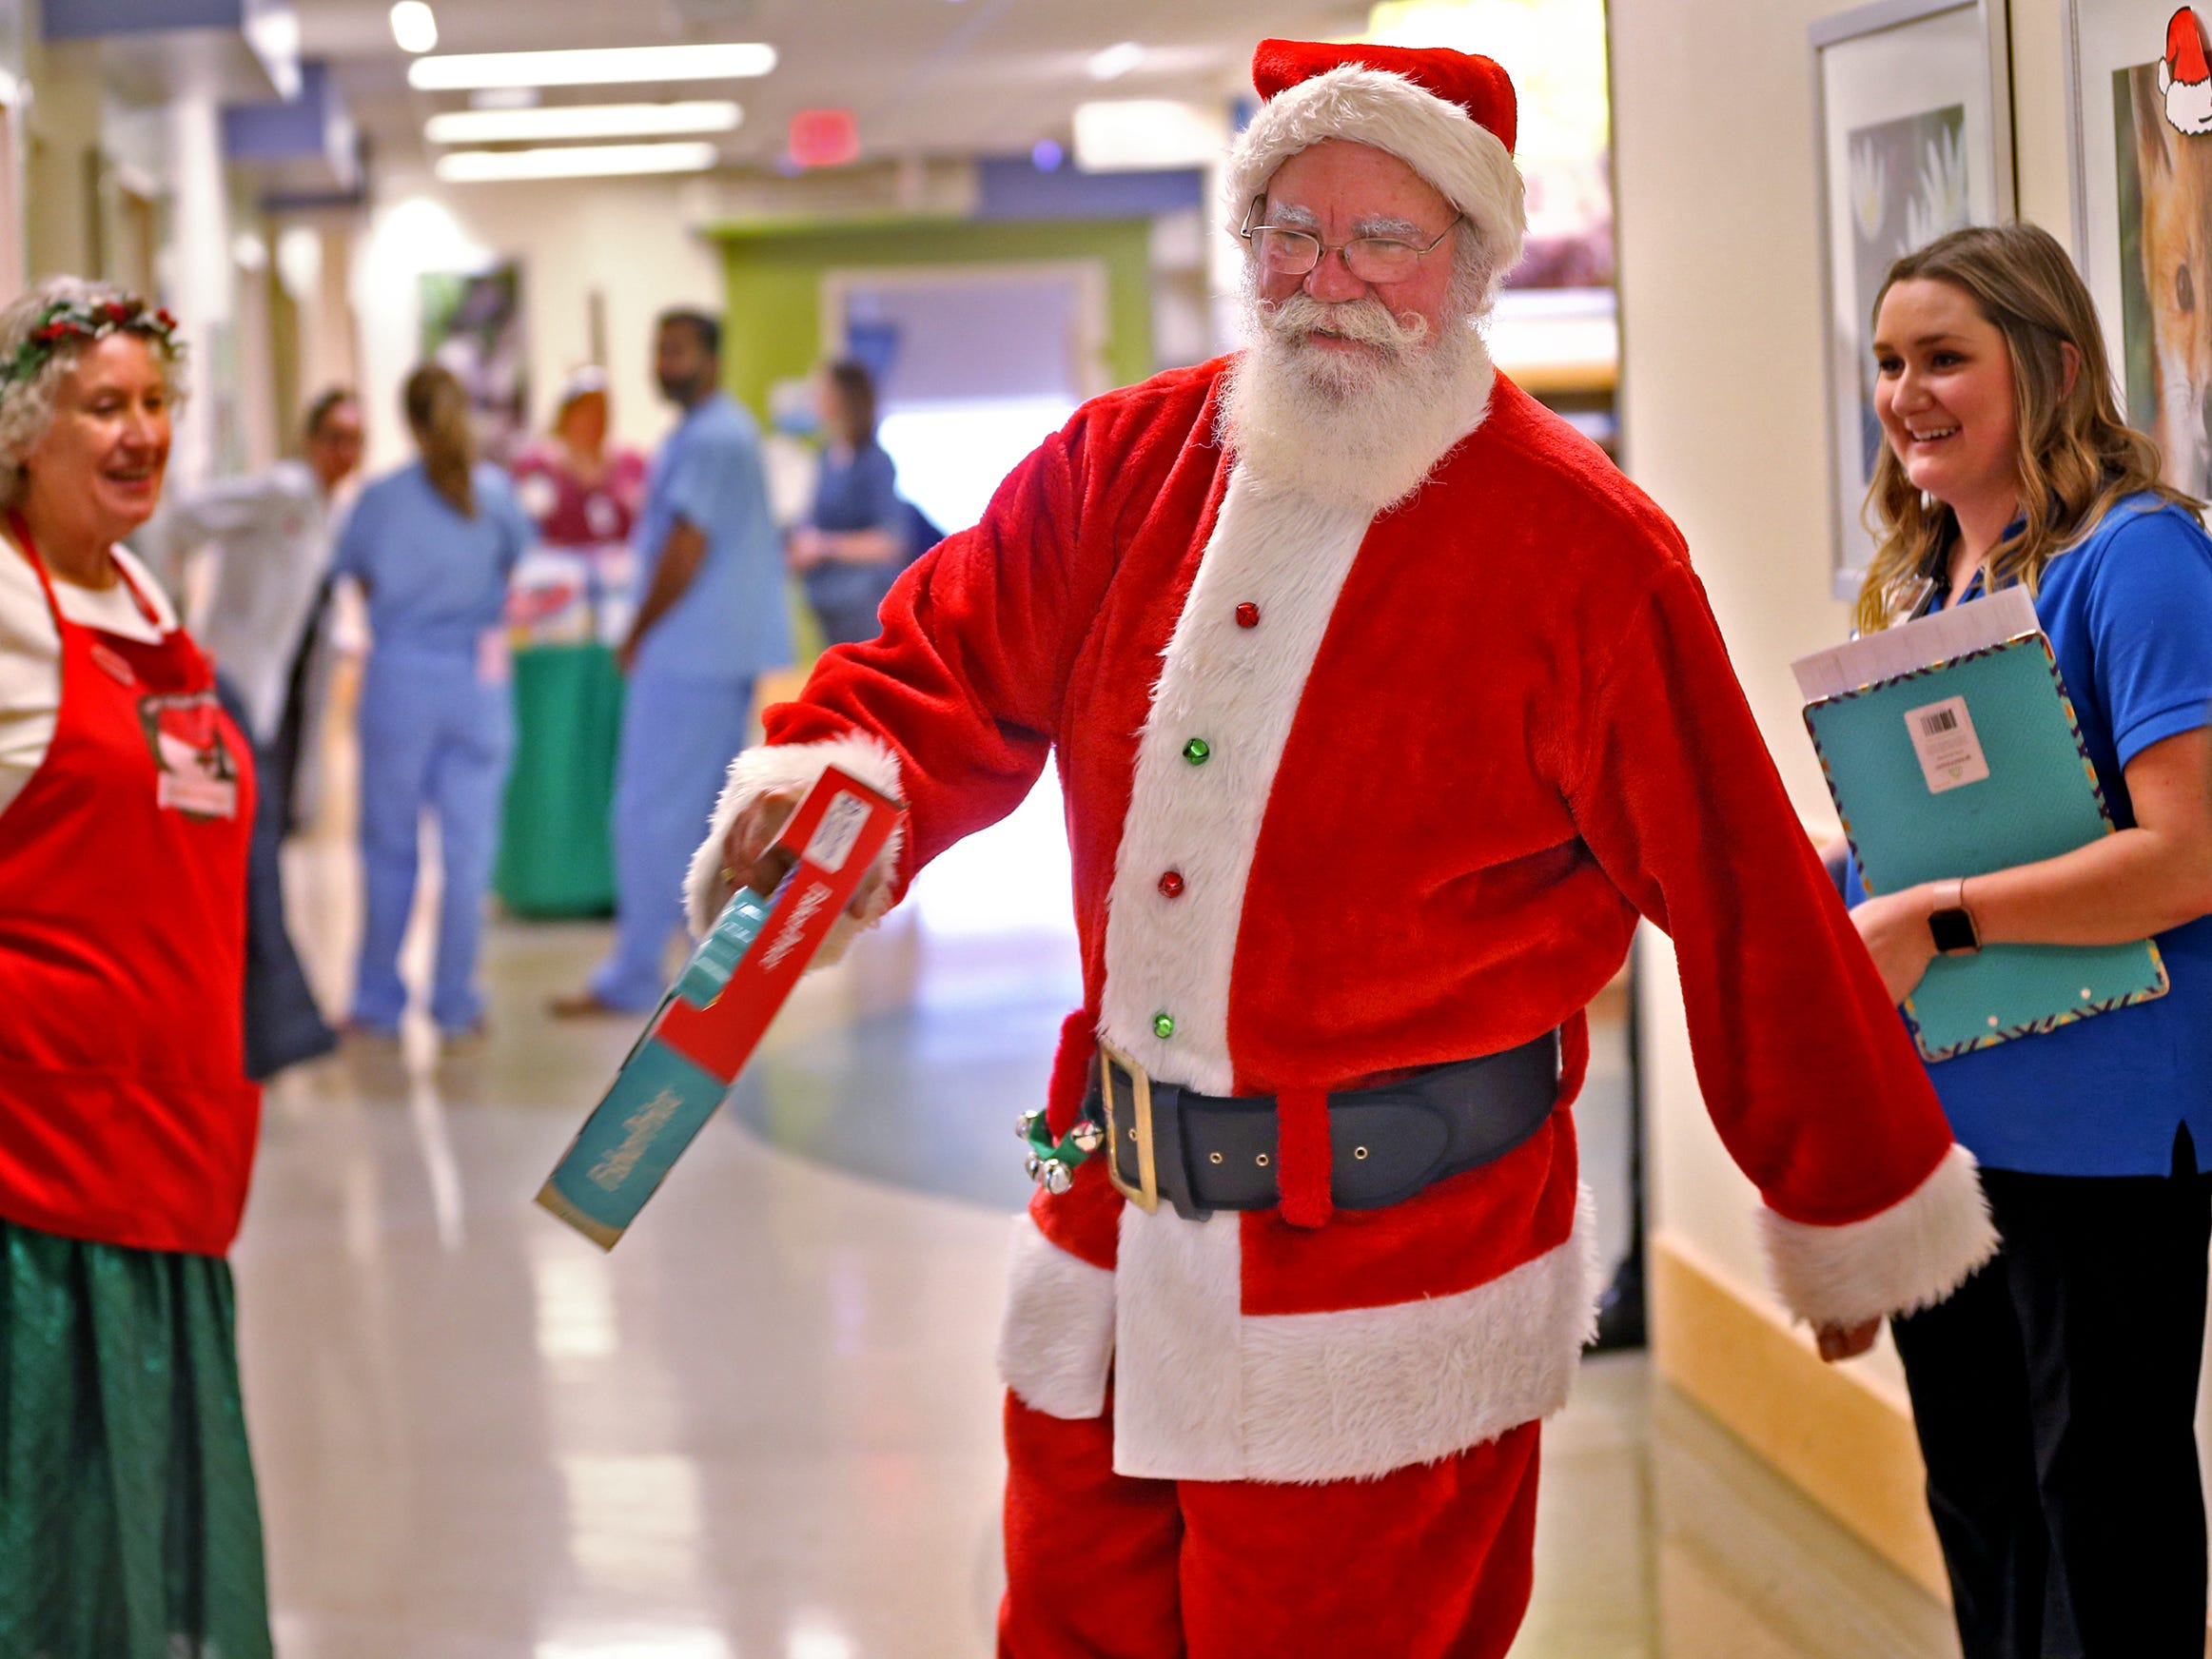 Santa and Mrs. Claus, aka Bill and Kathy Armstrong, visit with kids at Riley Children's Health, Thursday, Dec. 13, 2018.  In between two of the rooms, Santa danced.